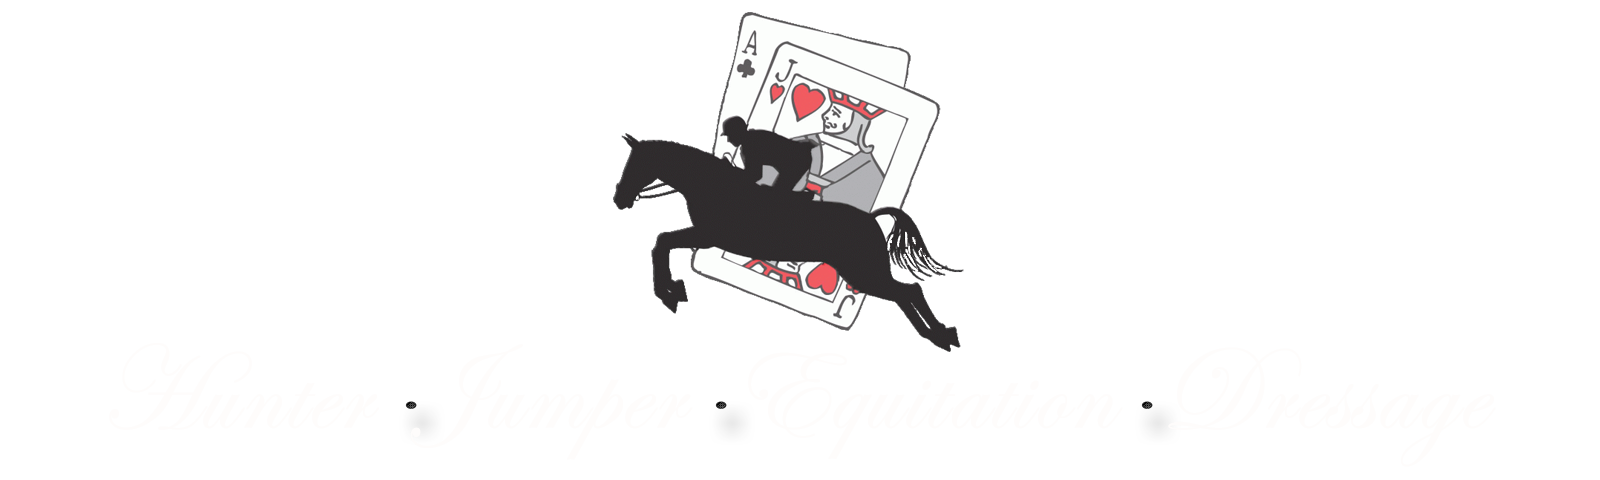 blackjack-logo-header